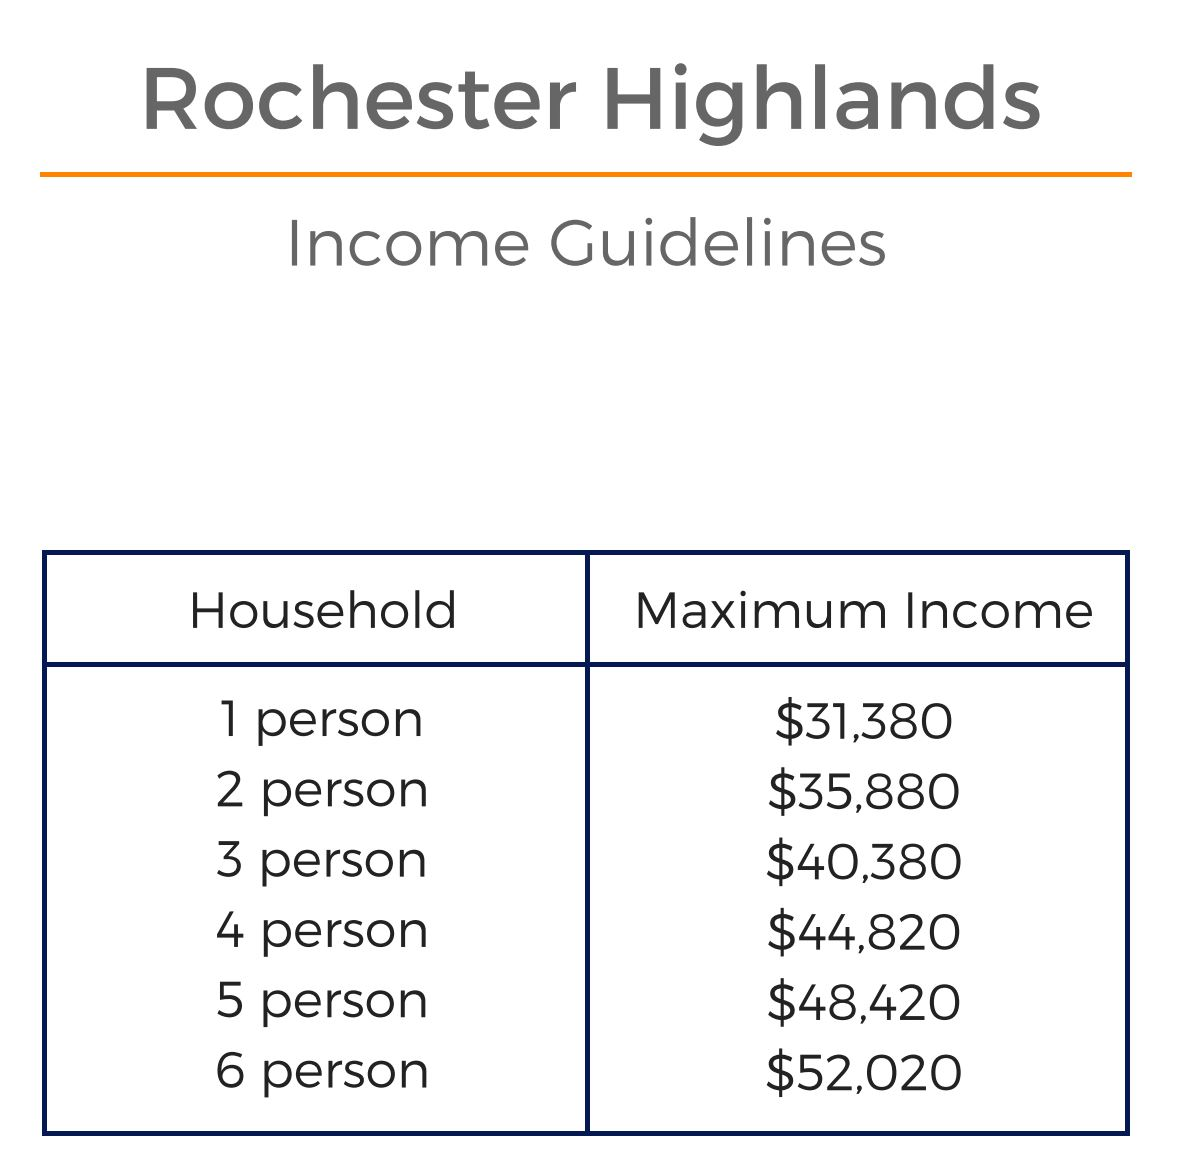 Rochester Highlands Affordable Income Guidelines